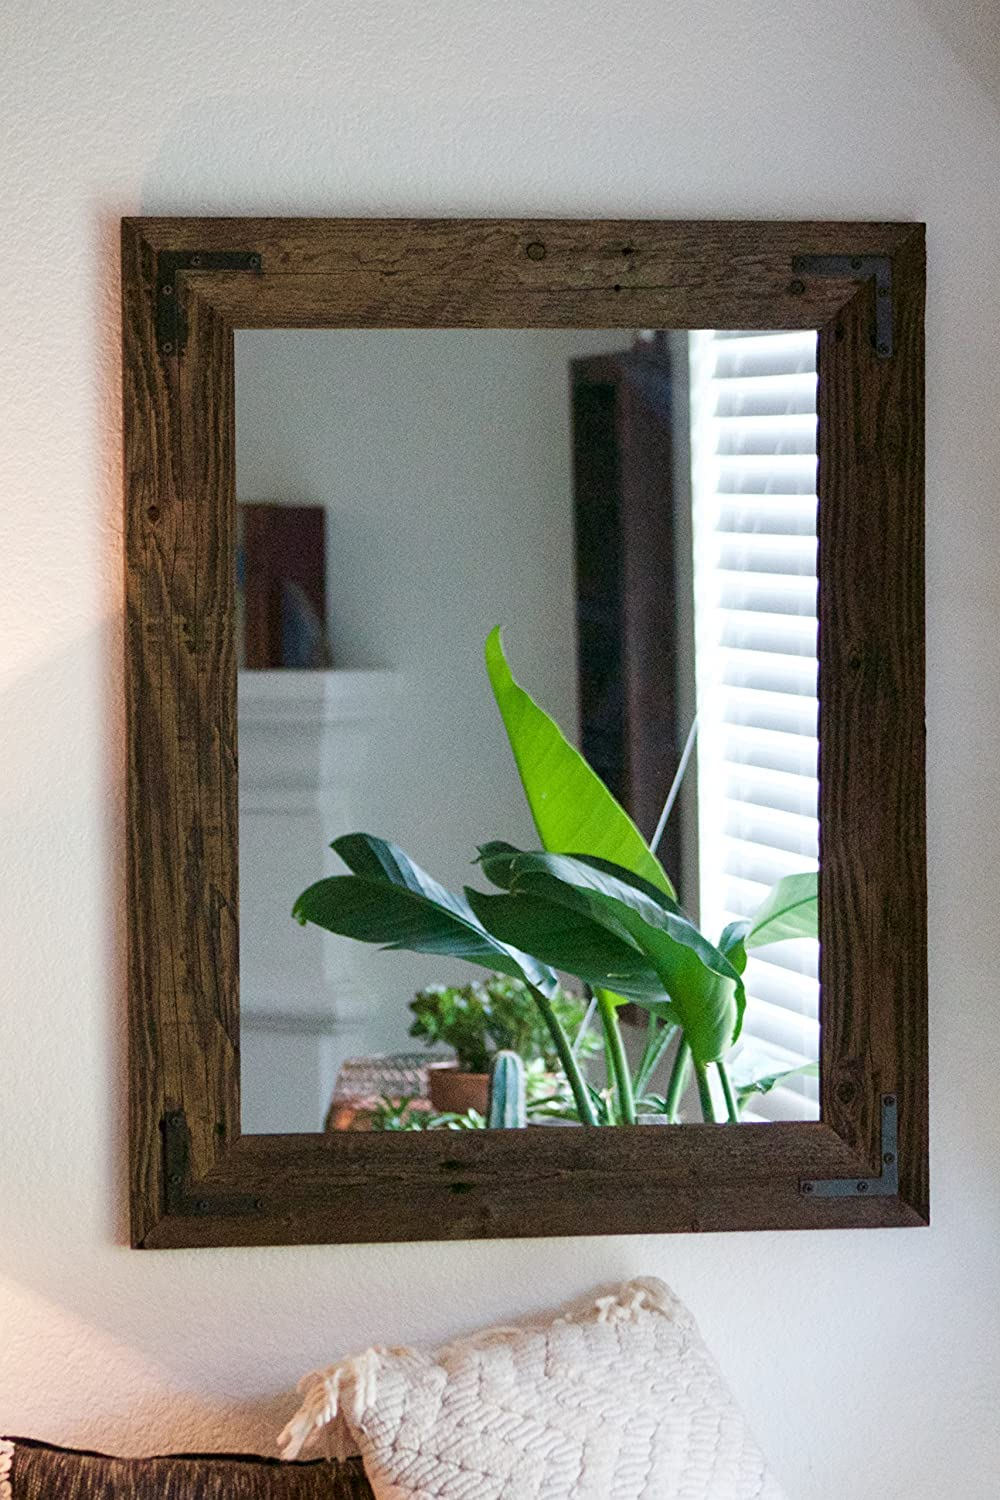 Rustic Wall Mirror - Large Wall Mirror - 24 x 30 Vanity Mirror - Bathroom Mirror - Rustic Mirror - Reclaimed Wood Mirror - Bathroom Vanity